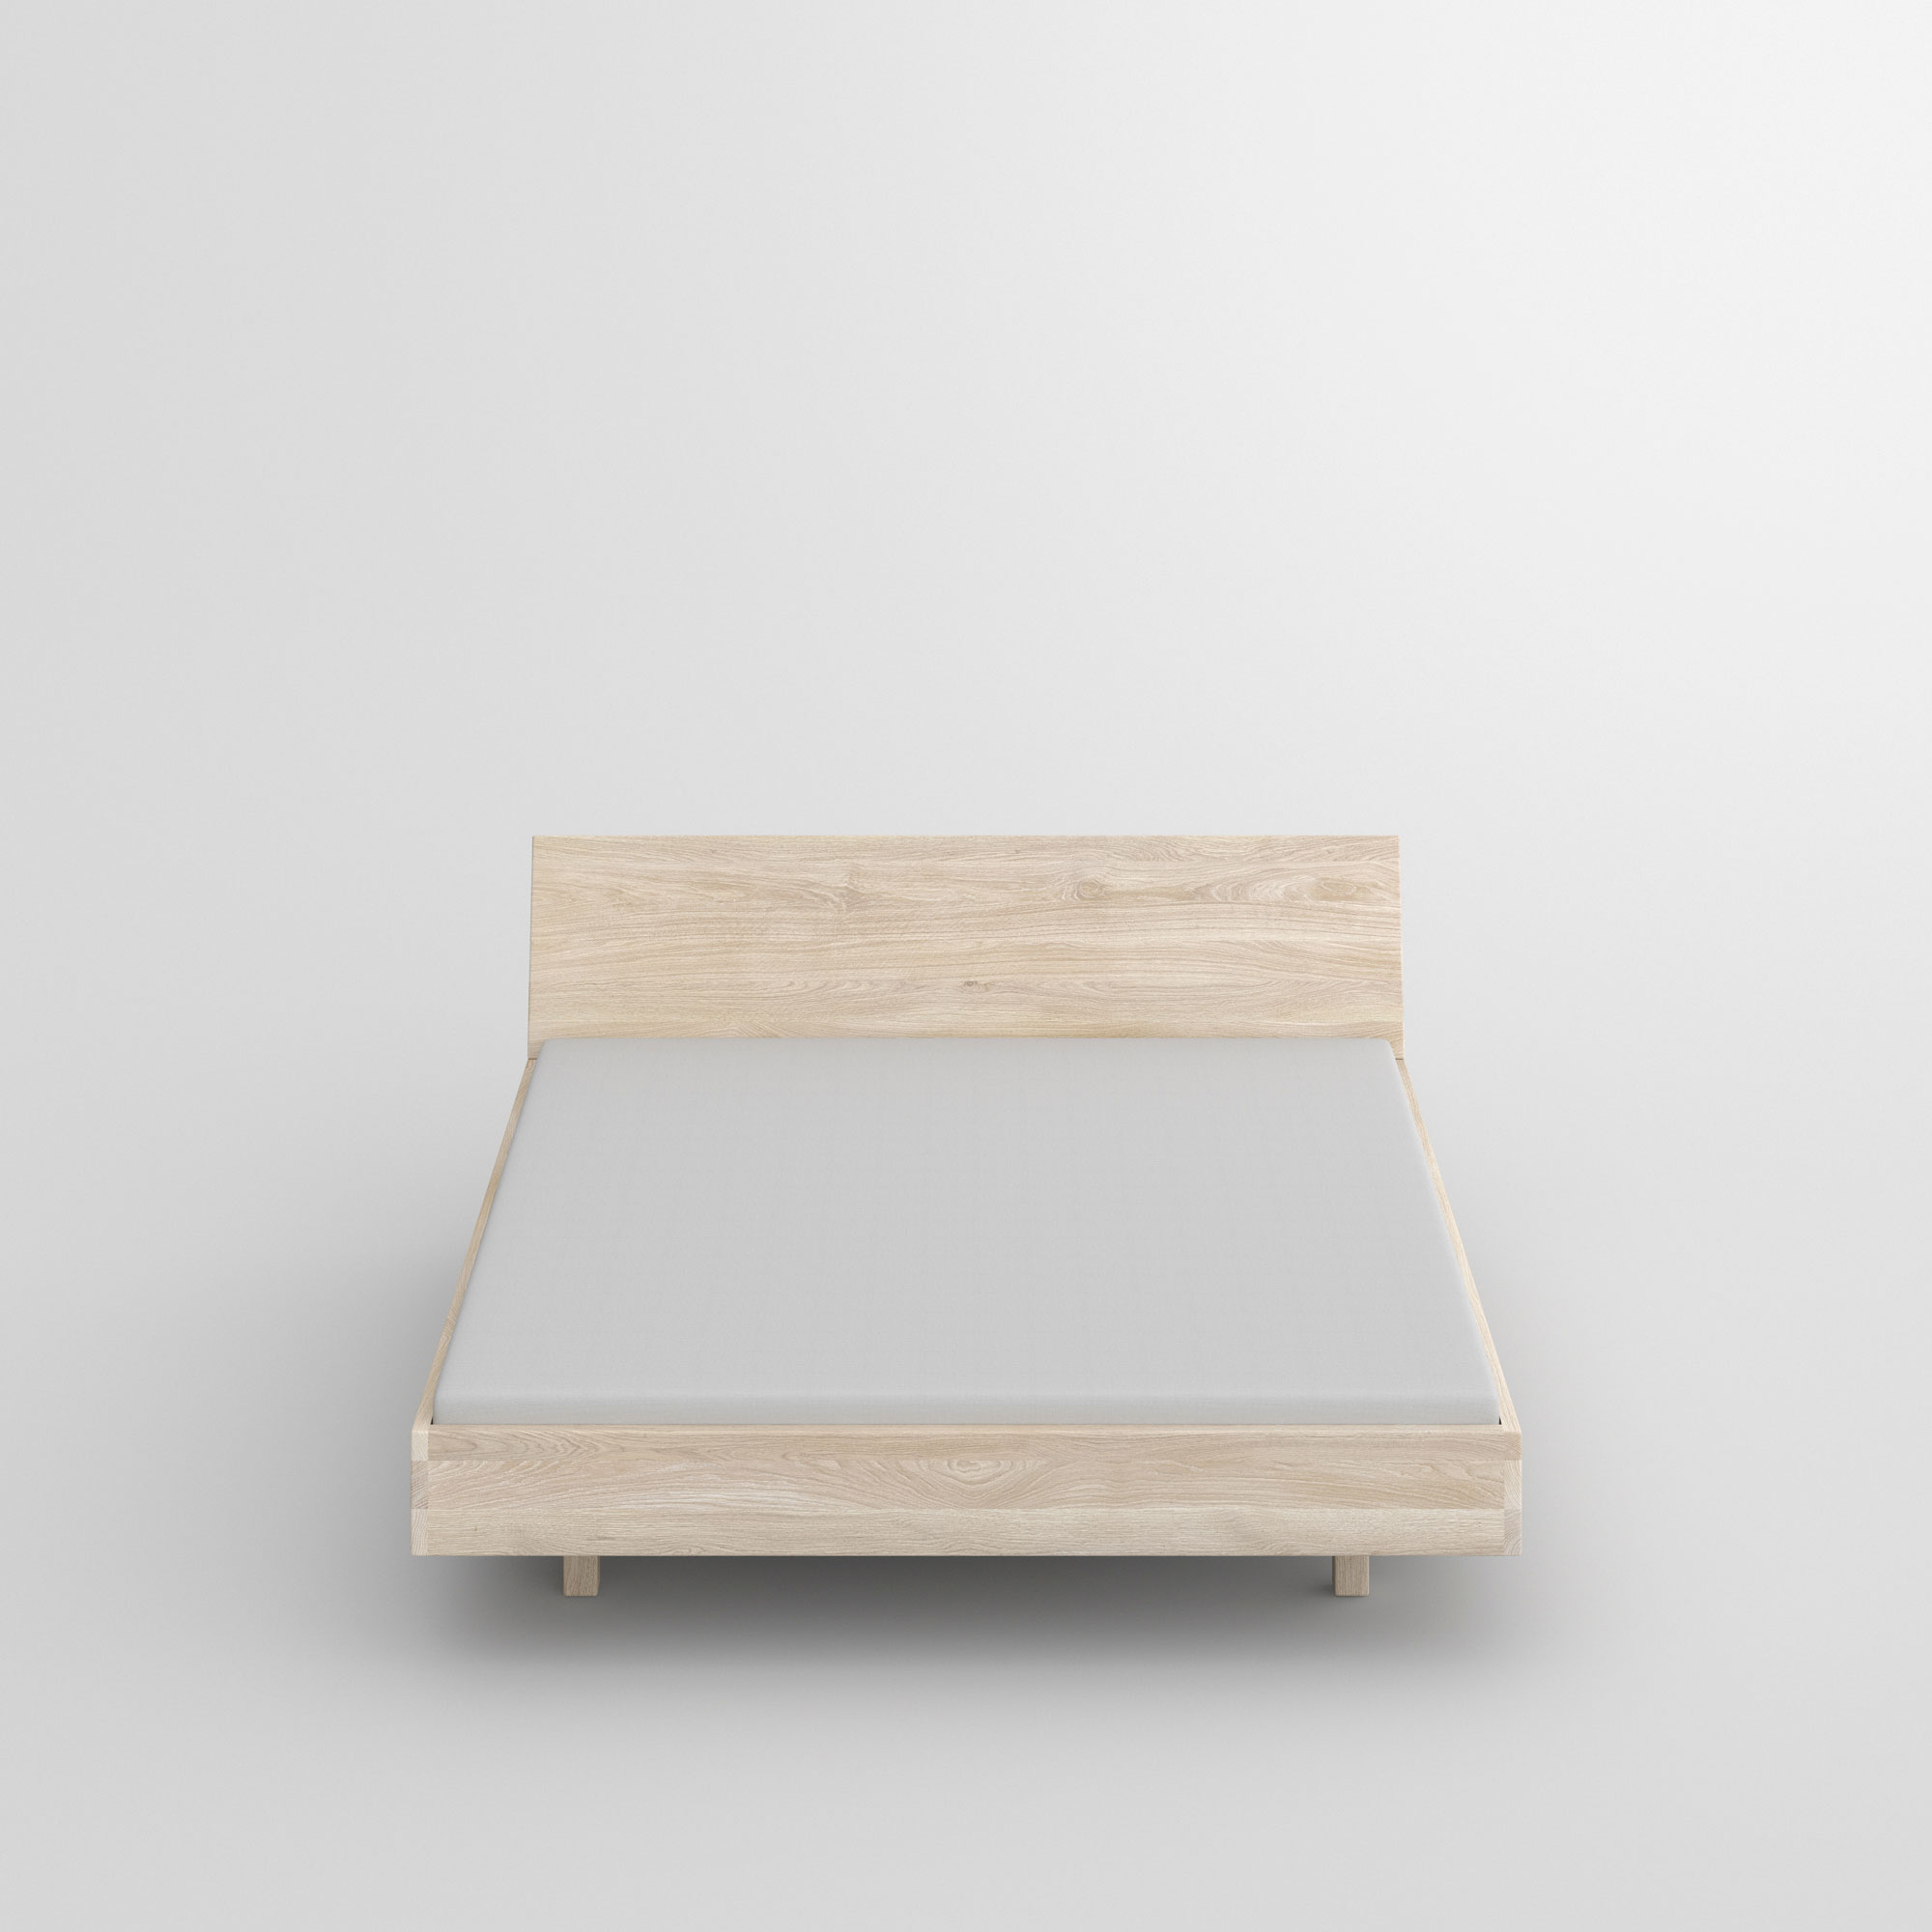 Solid Wooden Bed QUADRA SOFT cam3 custom made in solid wood by vitamin design